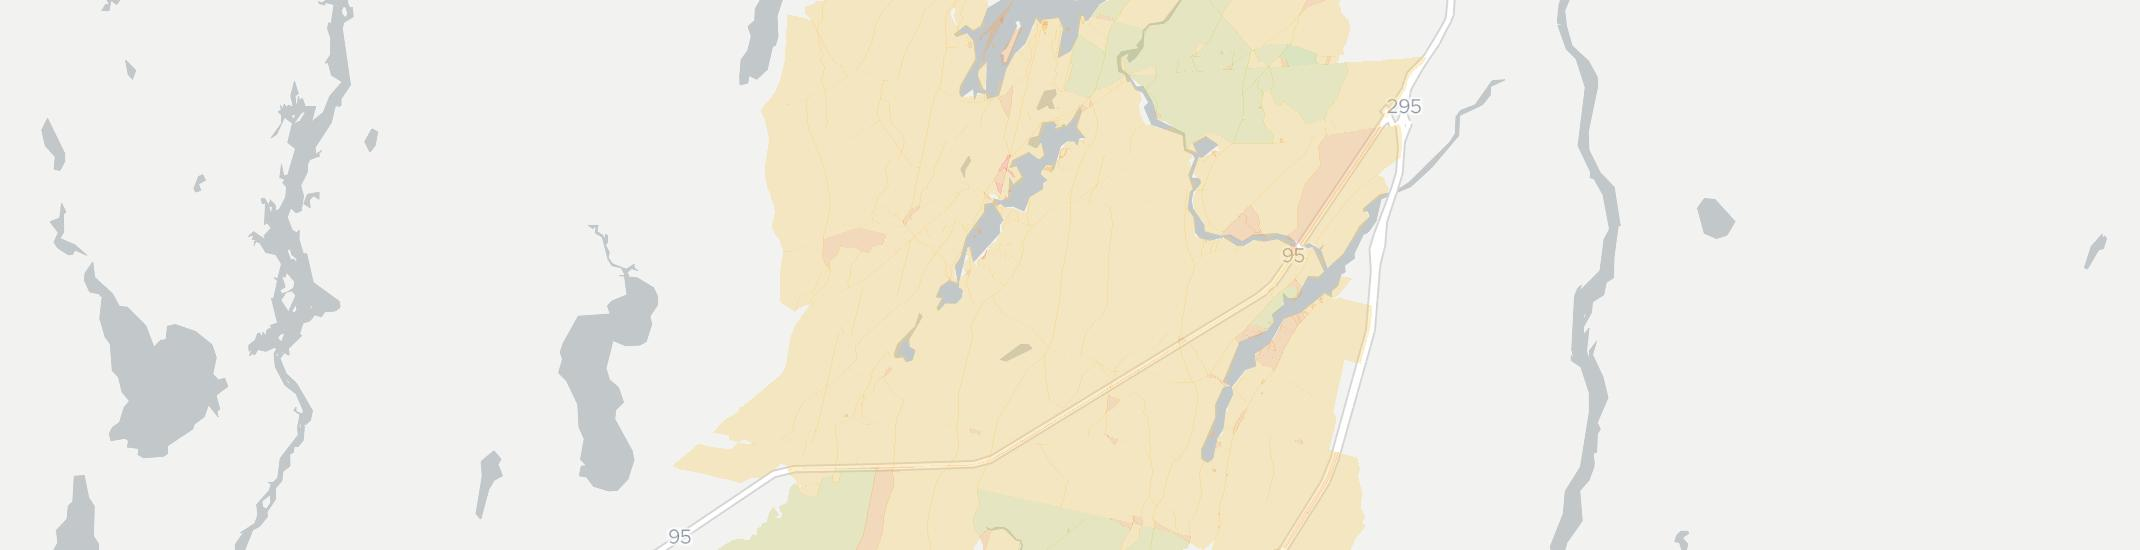 Litchfield Maine Map.Litchfield Me Has 12 Internet Service Providers From 29 95